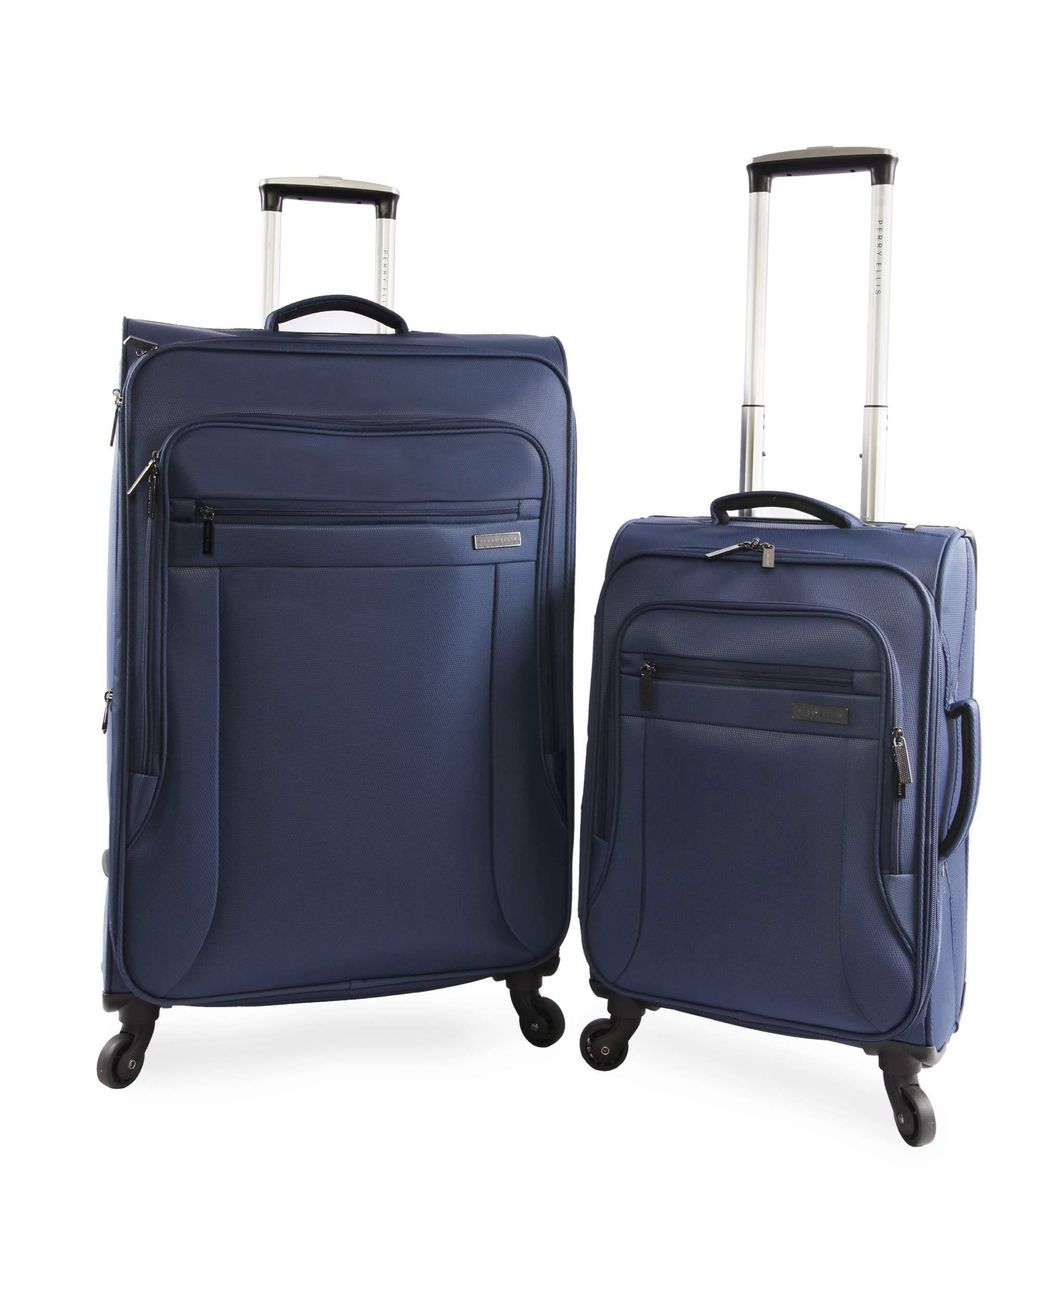 Perry Ellis Luggage Viceroy 2 Piece Set Expandable Suitcase with Spinner Wheels Navy